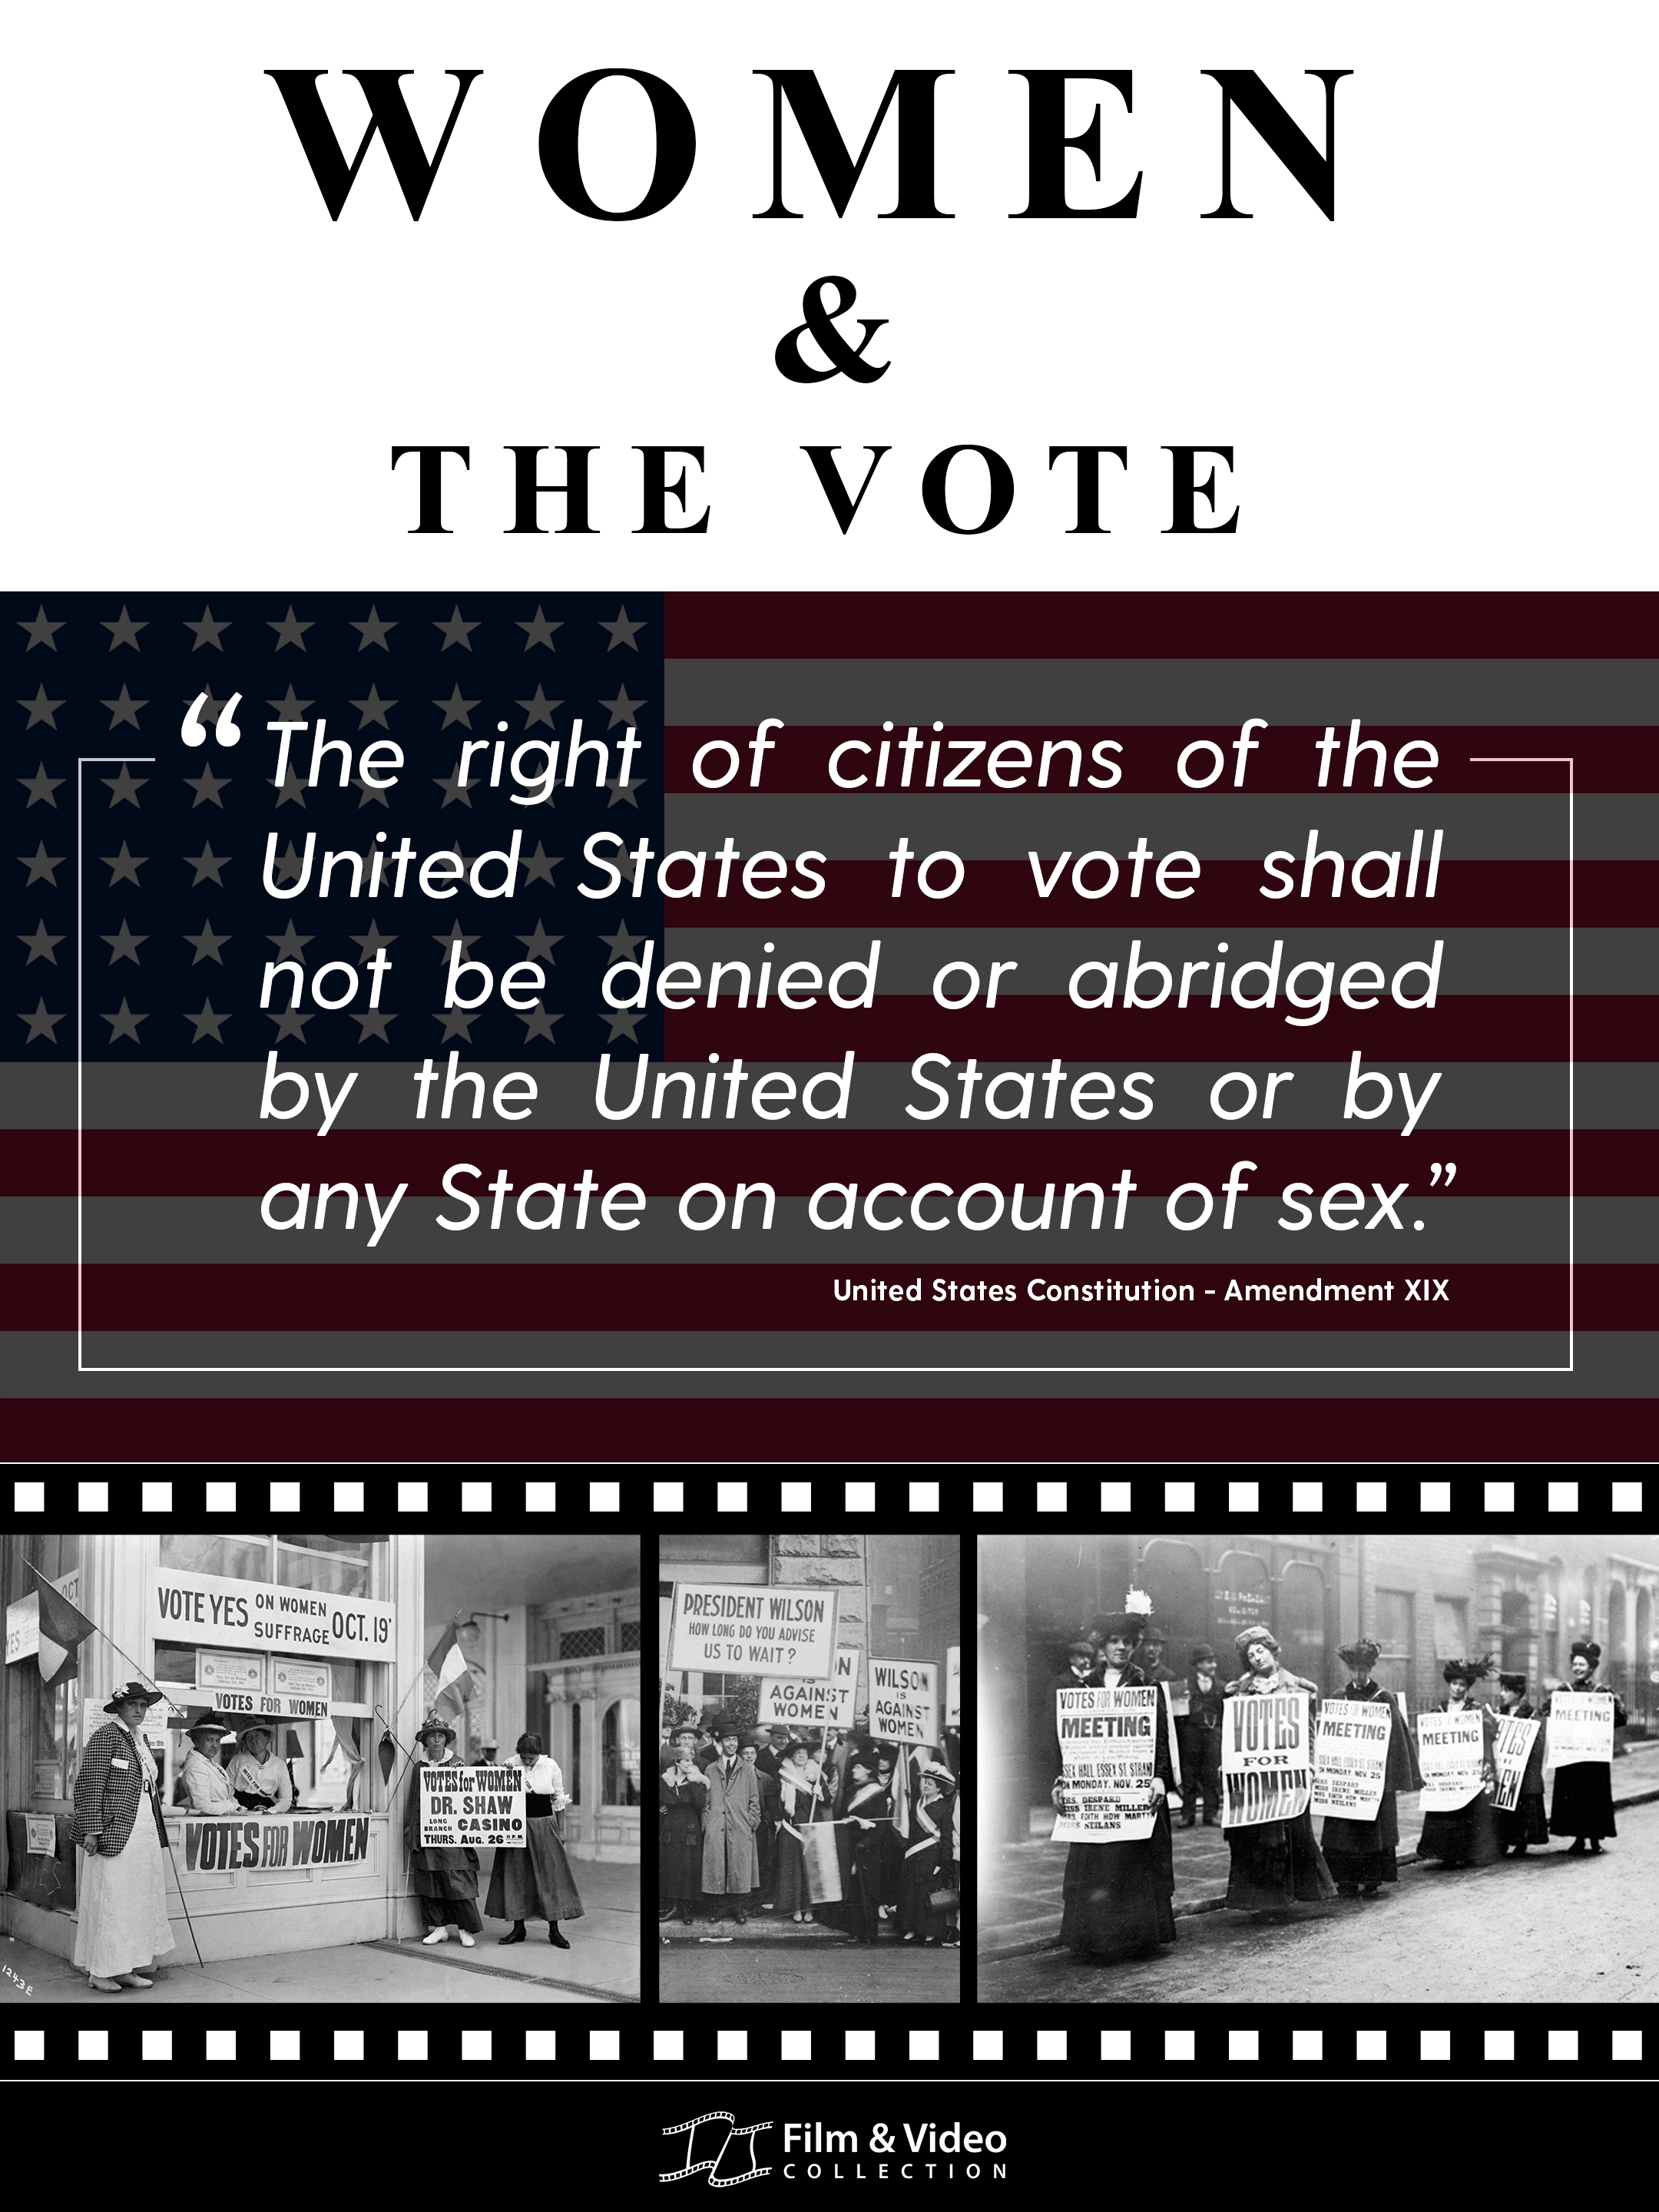 Poster image for Women and the Vote display with photo of suffragists and a film strip graphic